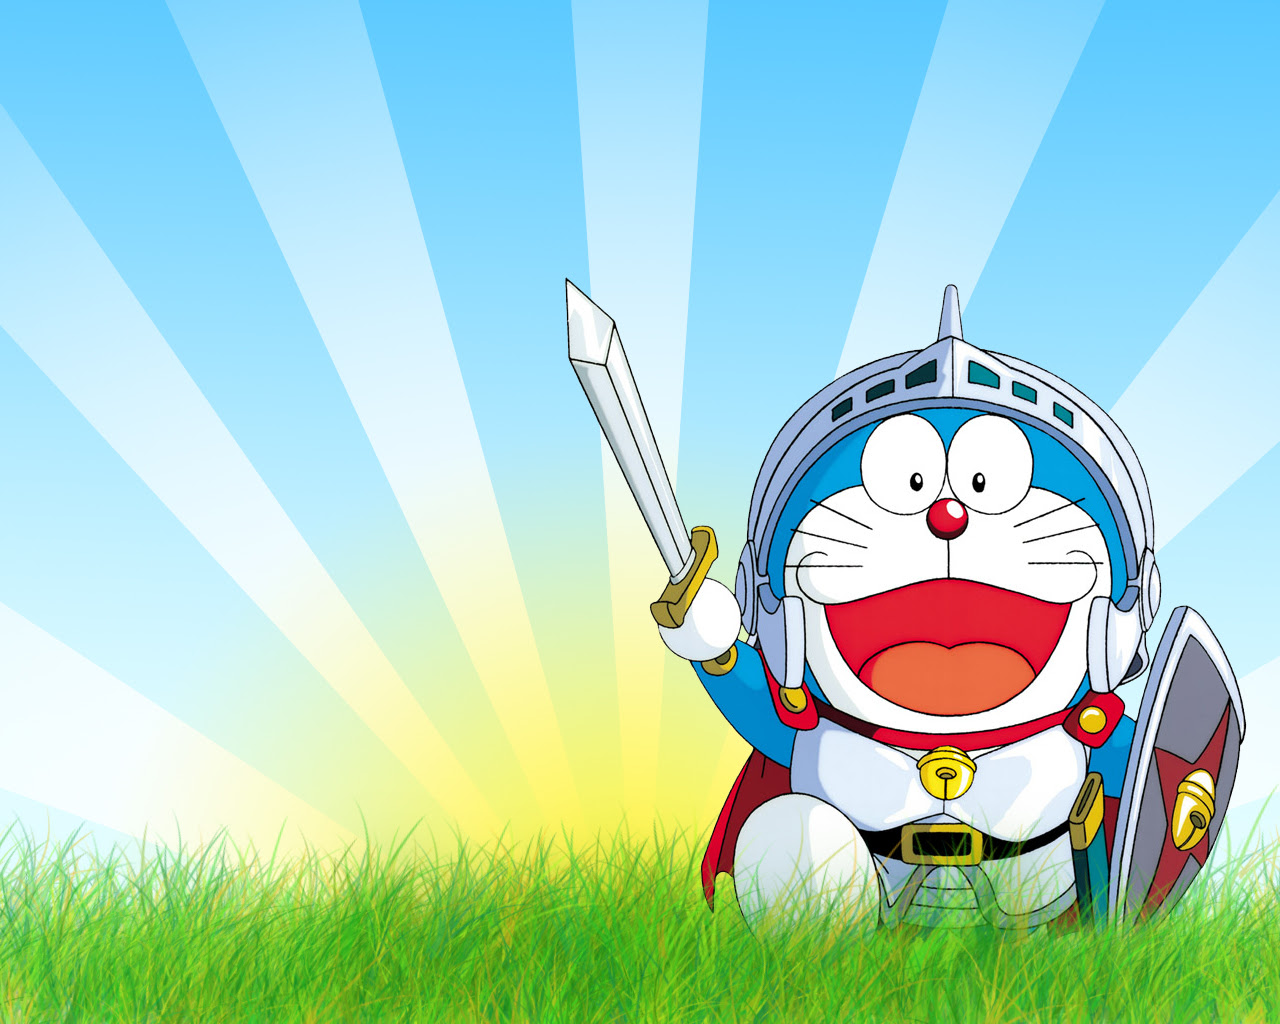 Doraemon Movie Anime Cartoon HD Wallpaper Free Download  Wallsev.com  Download Free HD Wallpapers